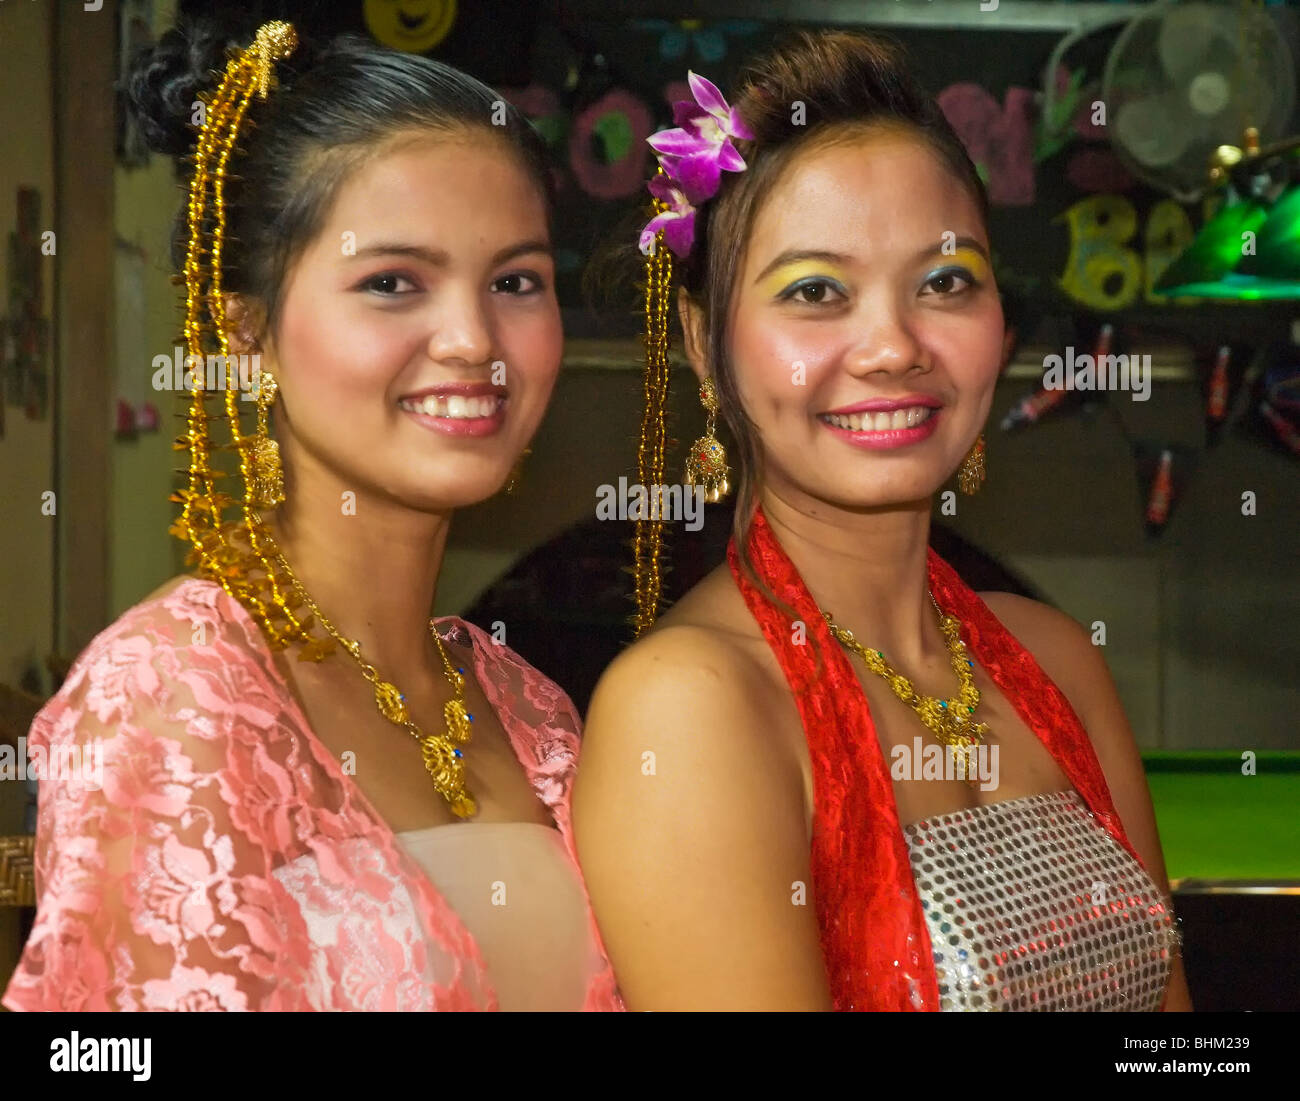 Pattaya women